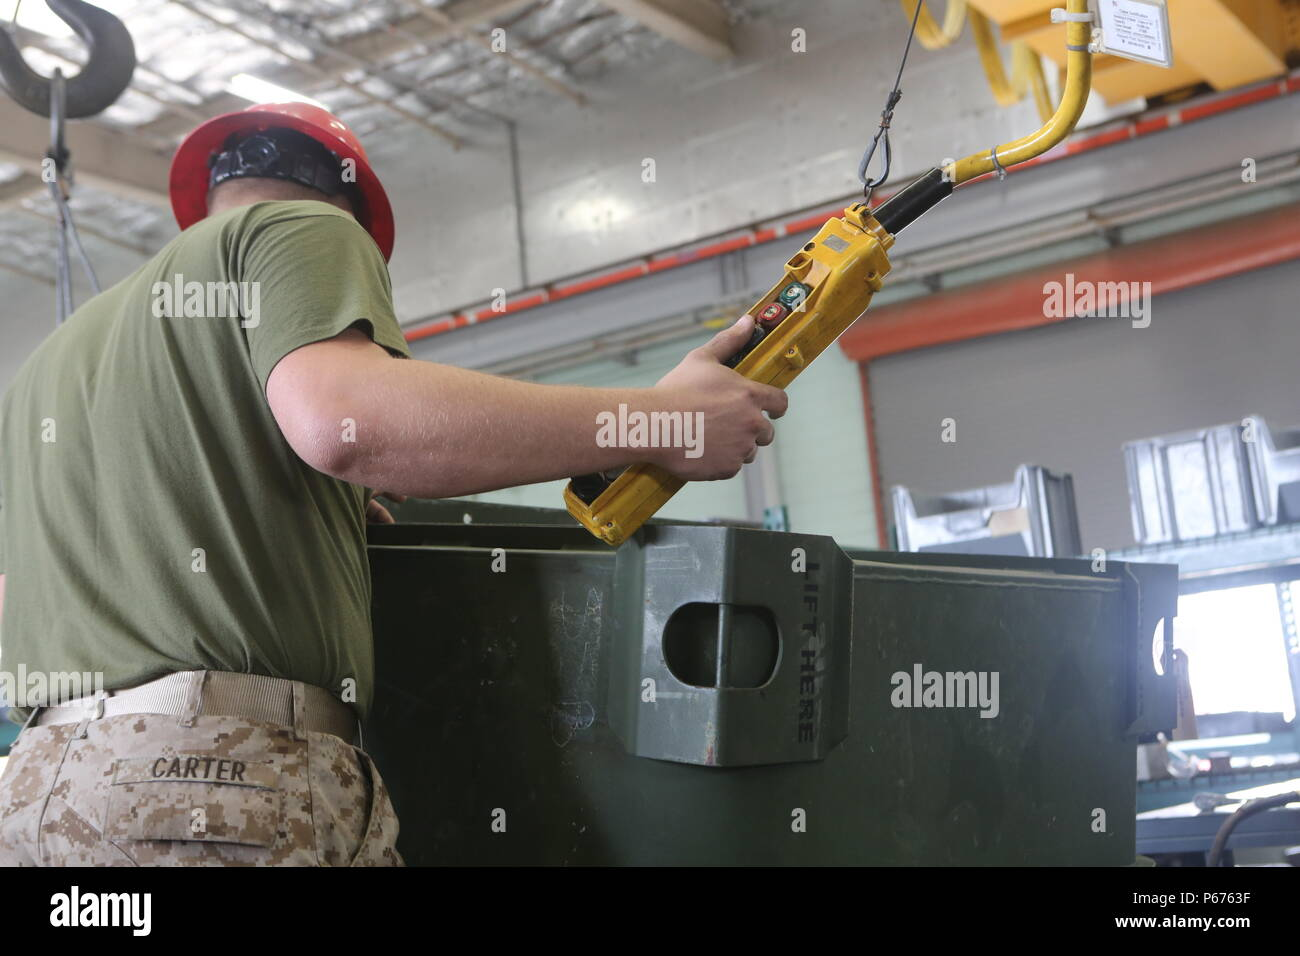 U.S. Marine Corps Lance Cpl. Tyler Carter, Combat Logistics Regiment (CLR) 15, Repairable Maintenance Company works to repair a 6.5L Turbo Diesel Engine during a MLG Day event on Camp Pendleton, Calif., May 18, 2016. The purpose of MLG Day is to showcase the capabilities of the 1st MLG to new officers and international military visitors.(U.S. Marine Corps photo by Lance Cpl. Salmineo Sherman Jr. Combat Camera 1st MLG/ RELEASED) - Stock Image